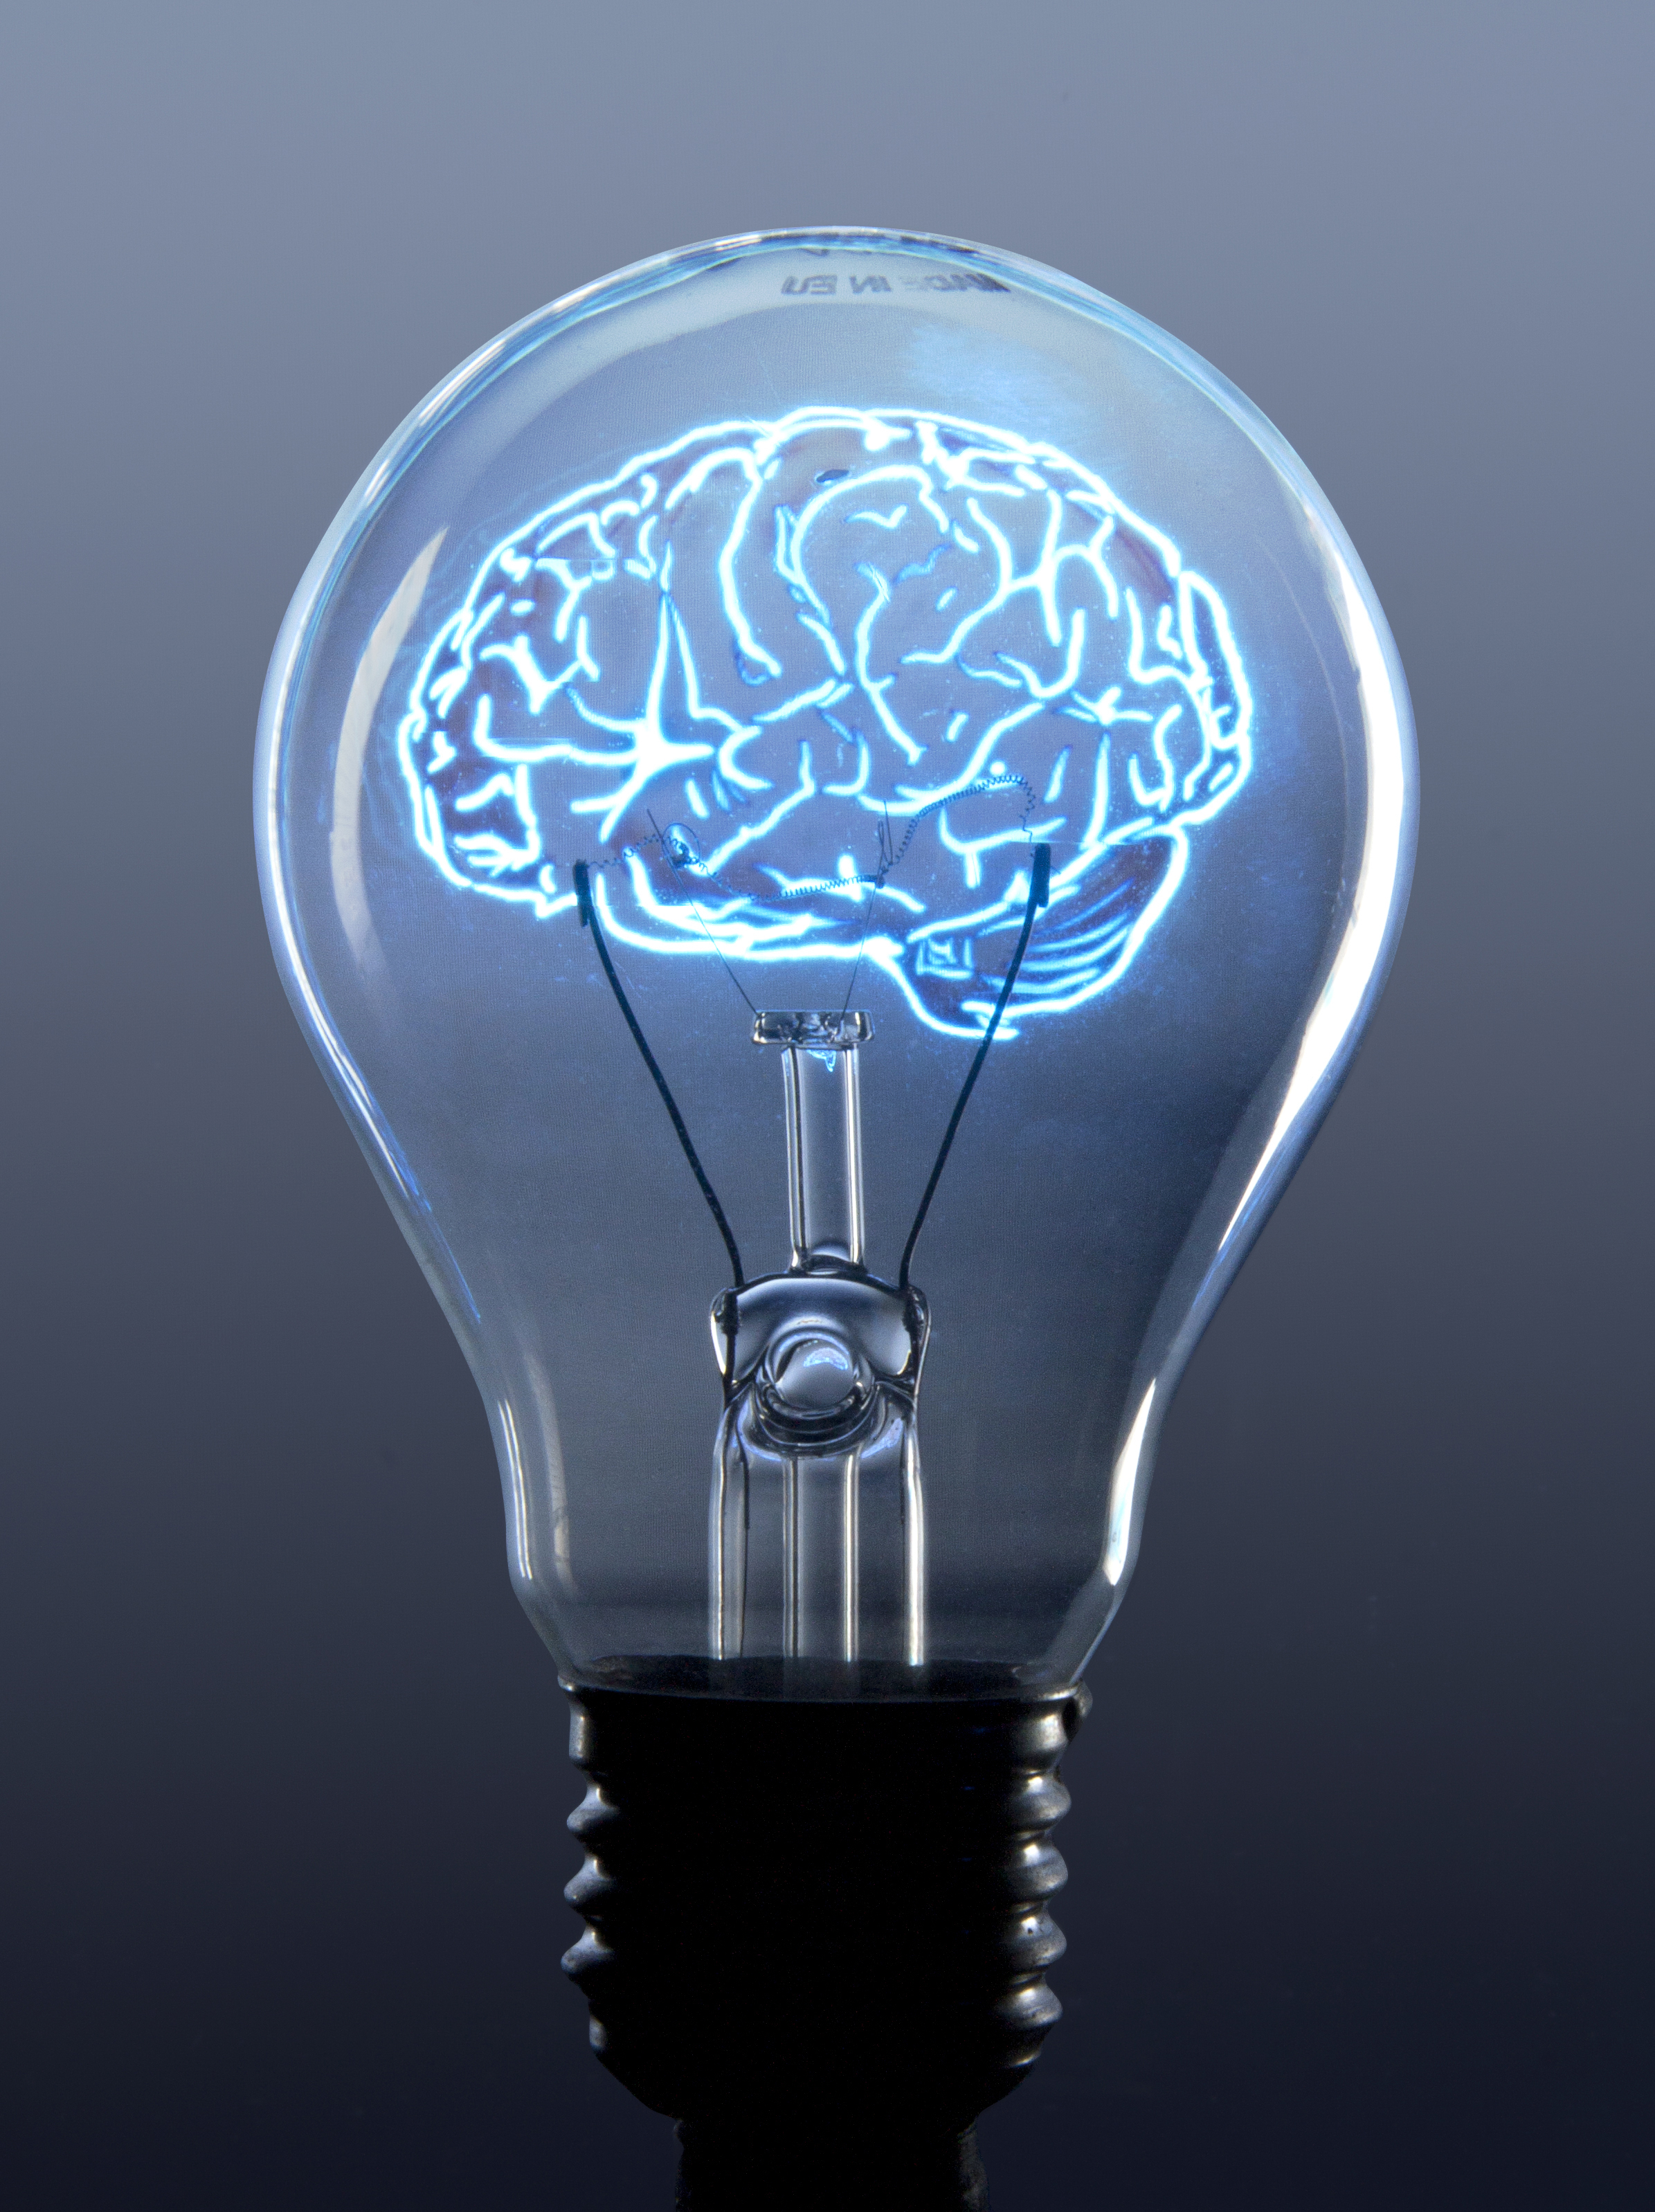 What Is the No. 1 Way to Keep Your Brain Sharp? | Psychology Today